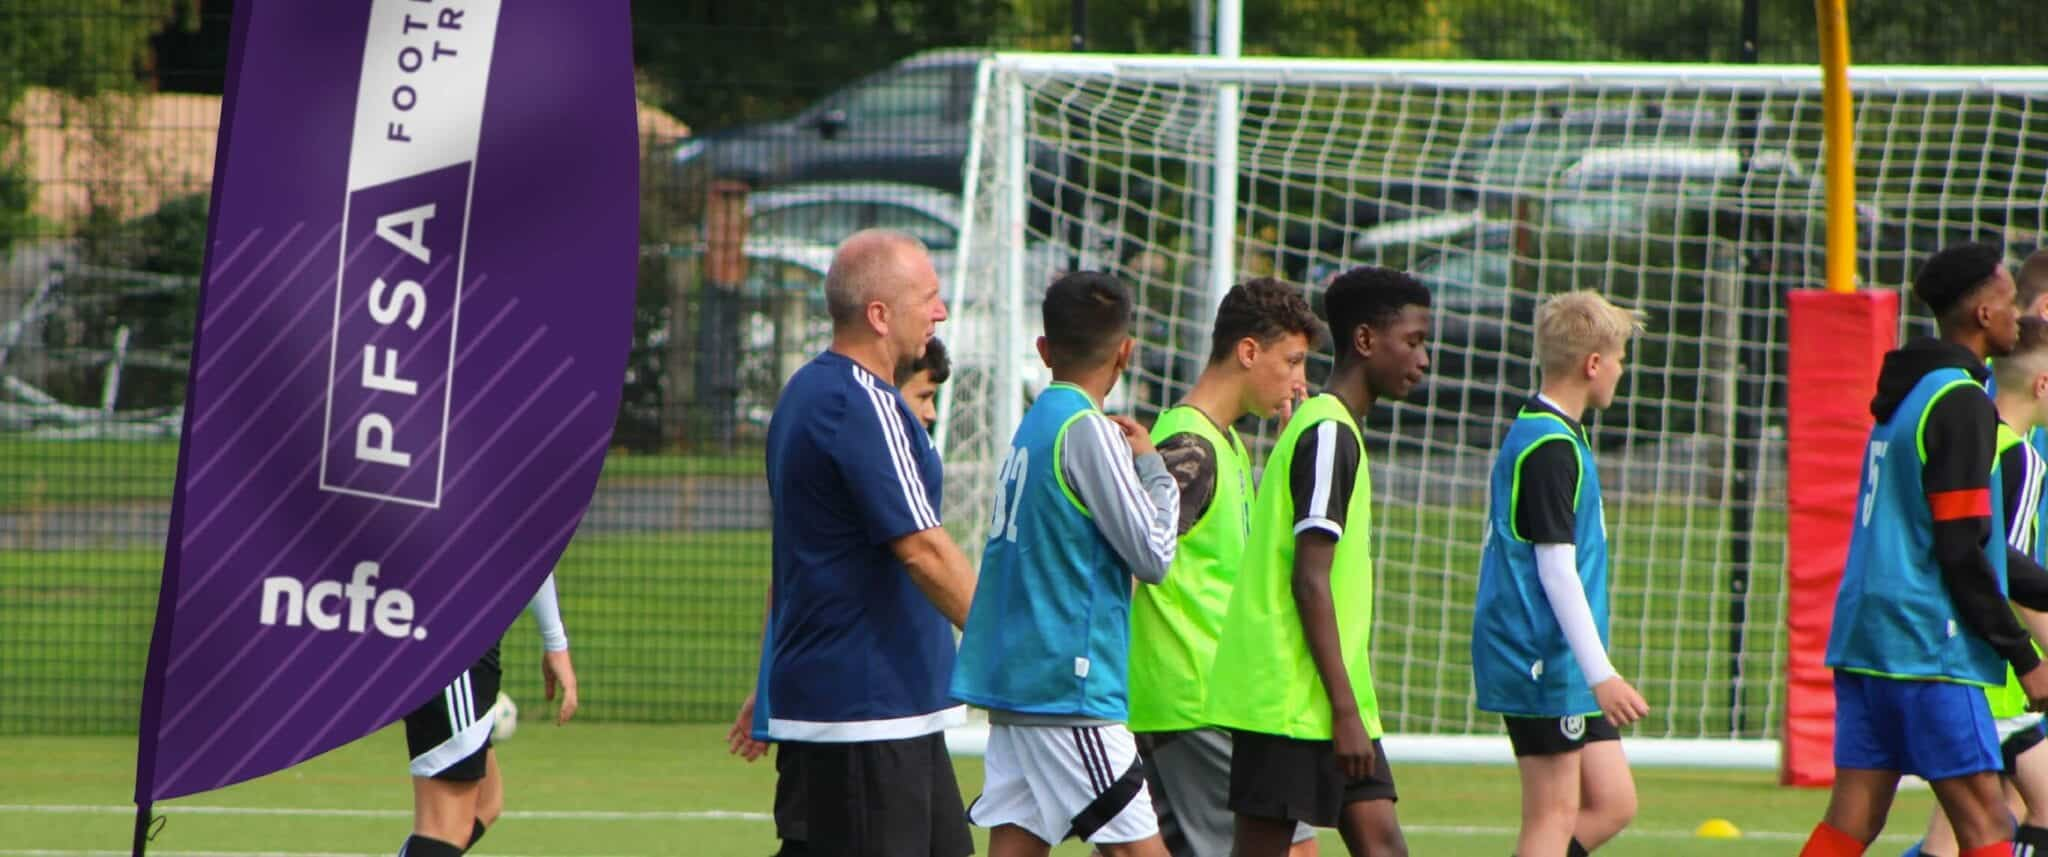 PFSA Football Trials